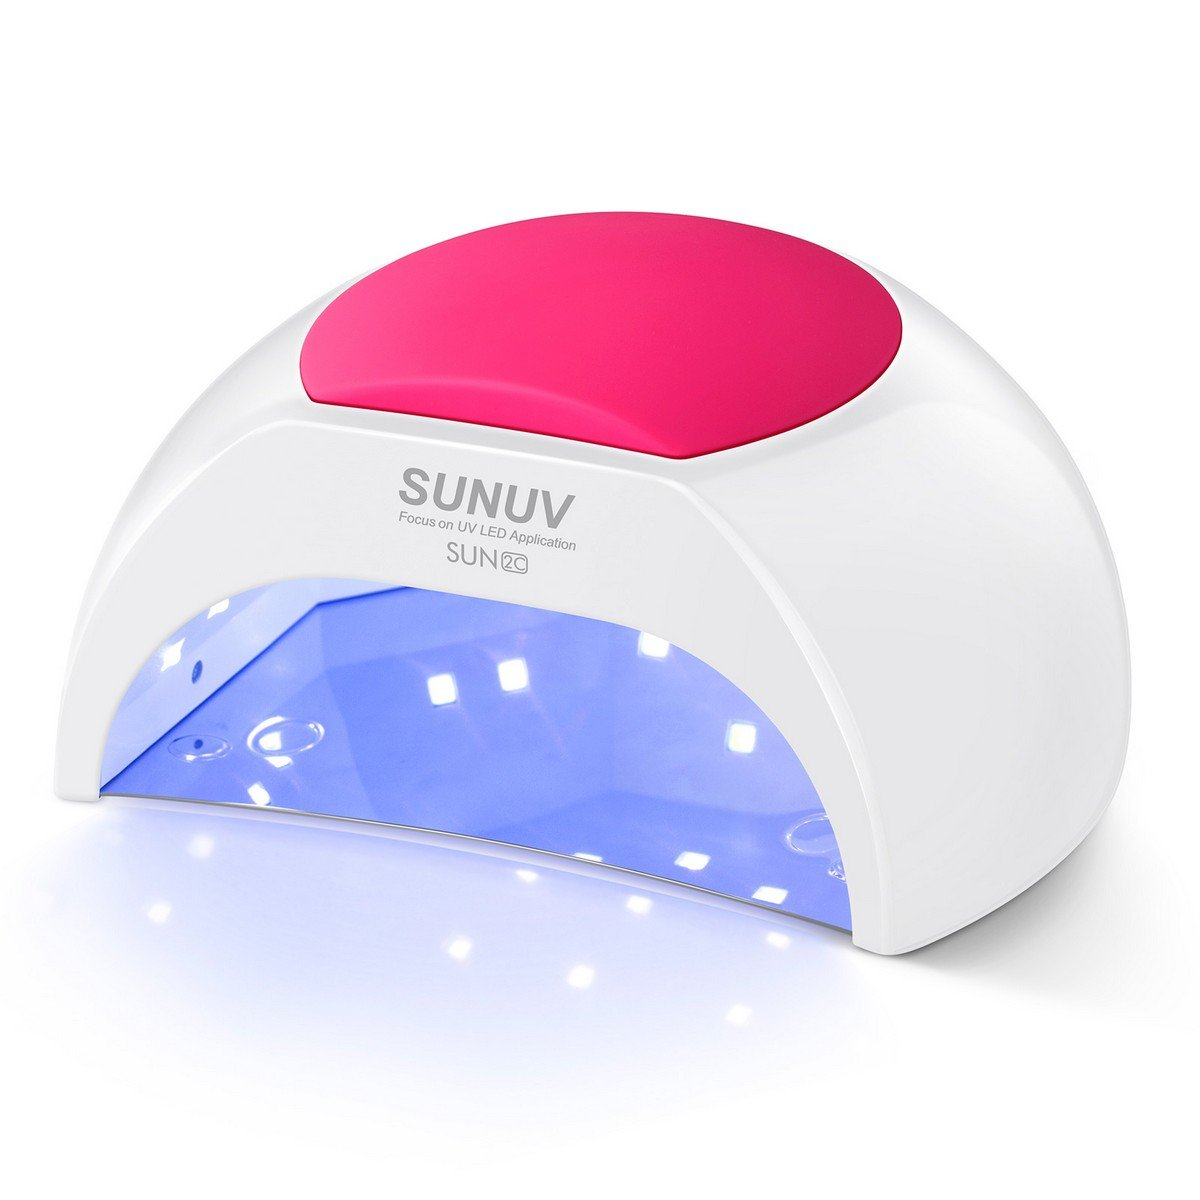 Amazon Com Gel Uv Nail Lamp Sunuv 48w Uv Led Nail Dryer Light For Gel Nails Polish Manicure Professional Salon Curing Lamp With 4 Timer Setting Sensor Sun2c One Pink Pad Beauty